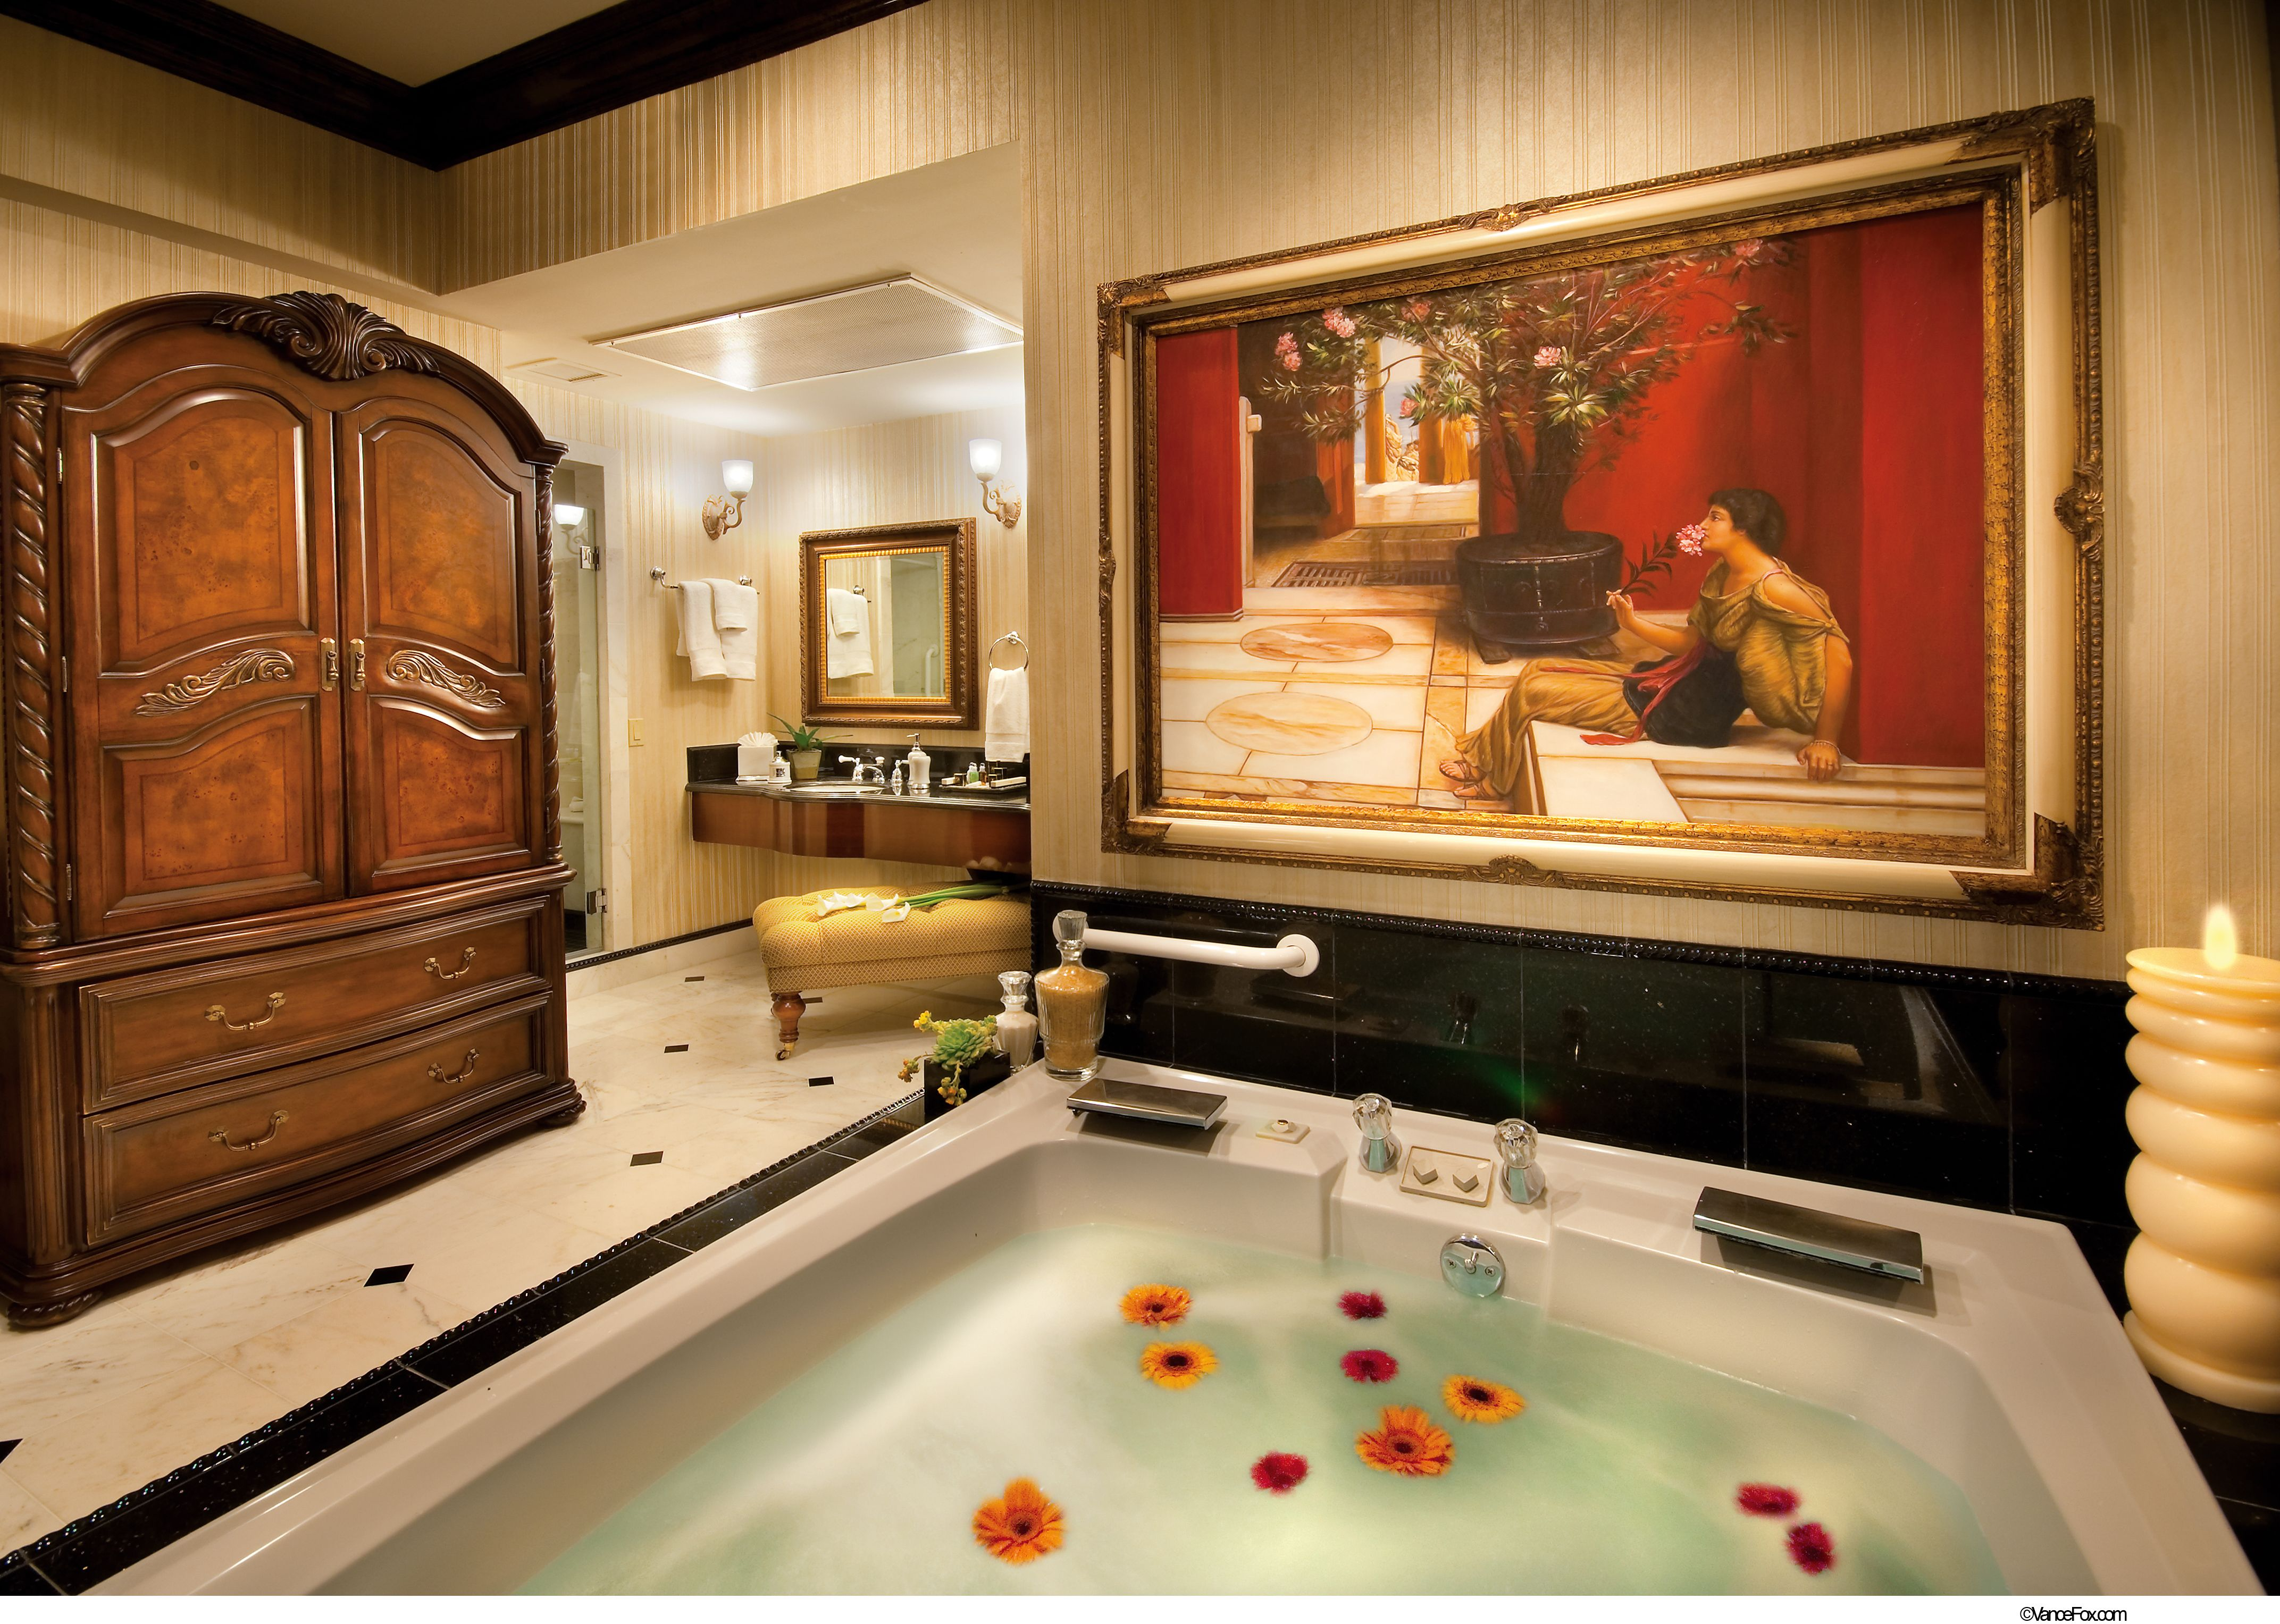 STUNNING jaquzzi suites on las vegas strip give both